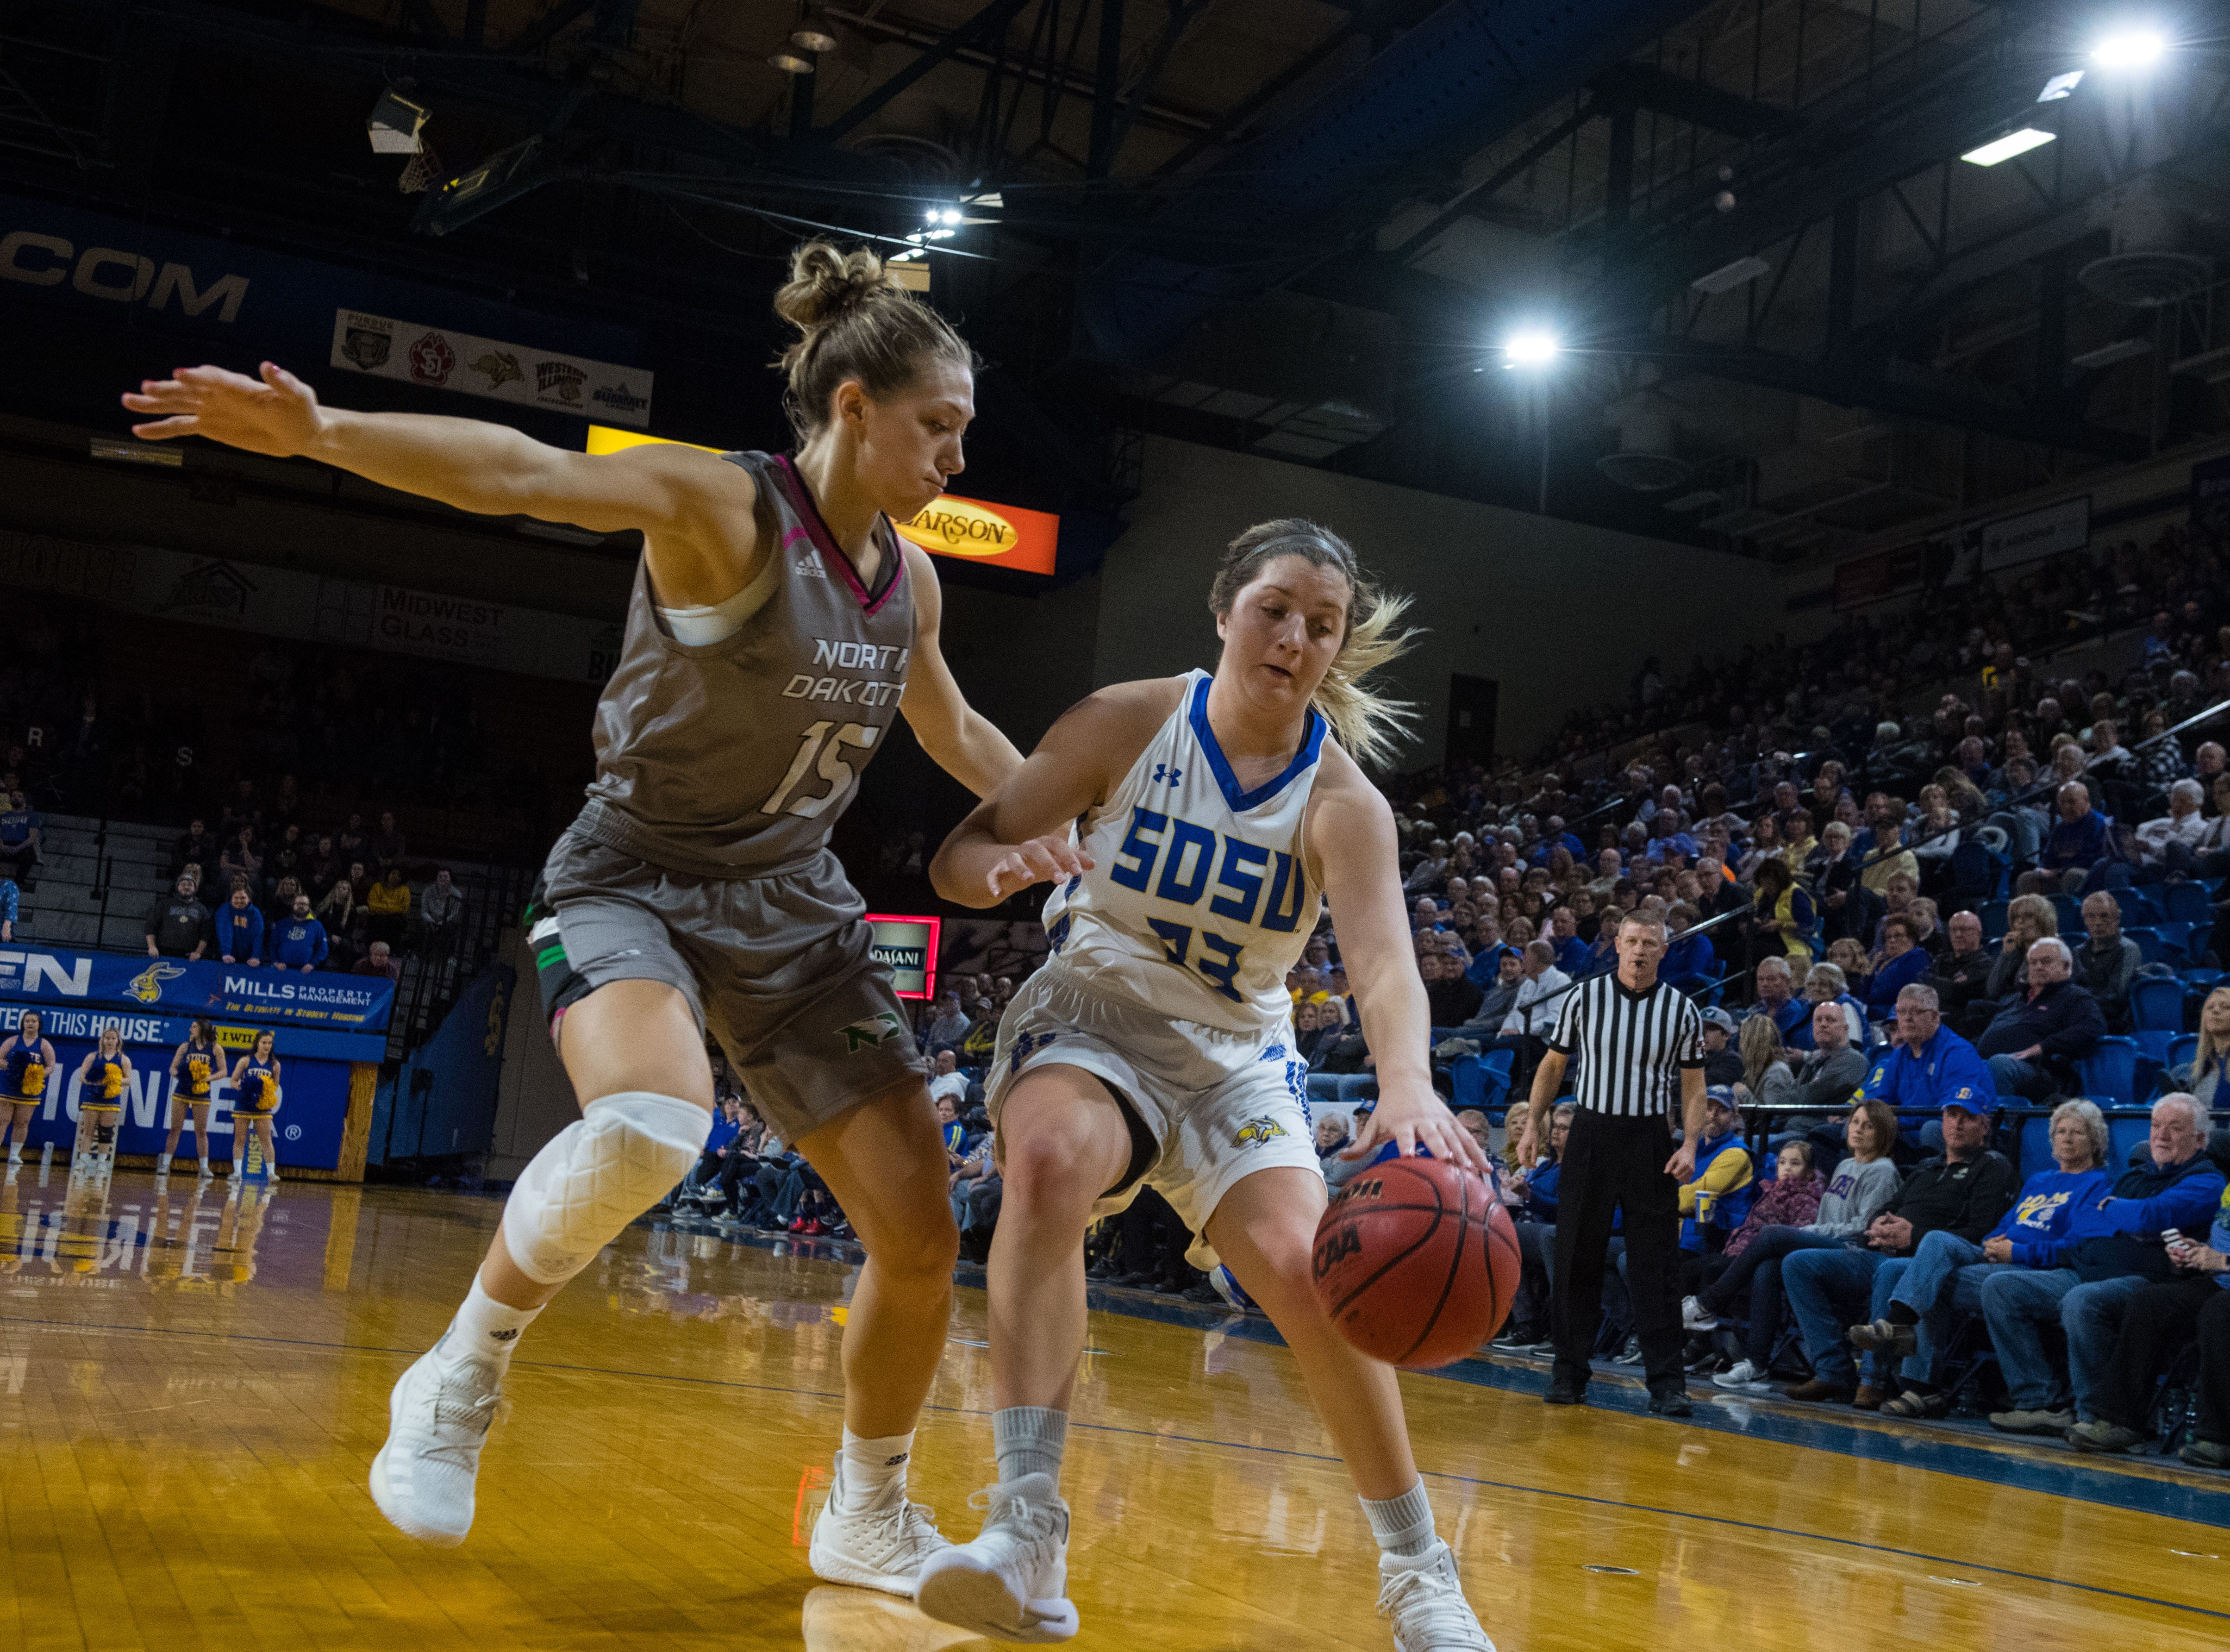 South Dakota State's Paiton Burckhard dribbles the ball past North Dakota player during a game in Brookings, S.D., Saturday, Feb. 9, 2019.